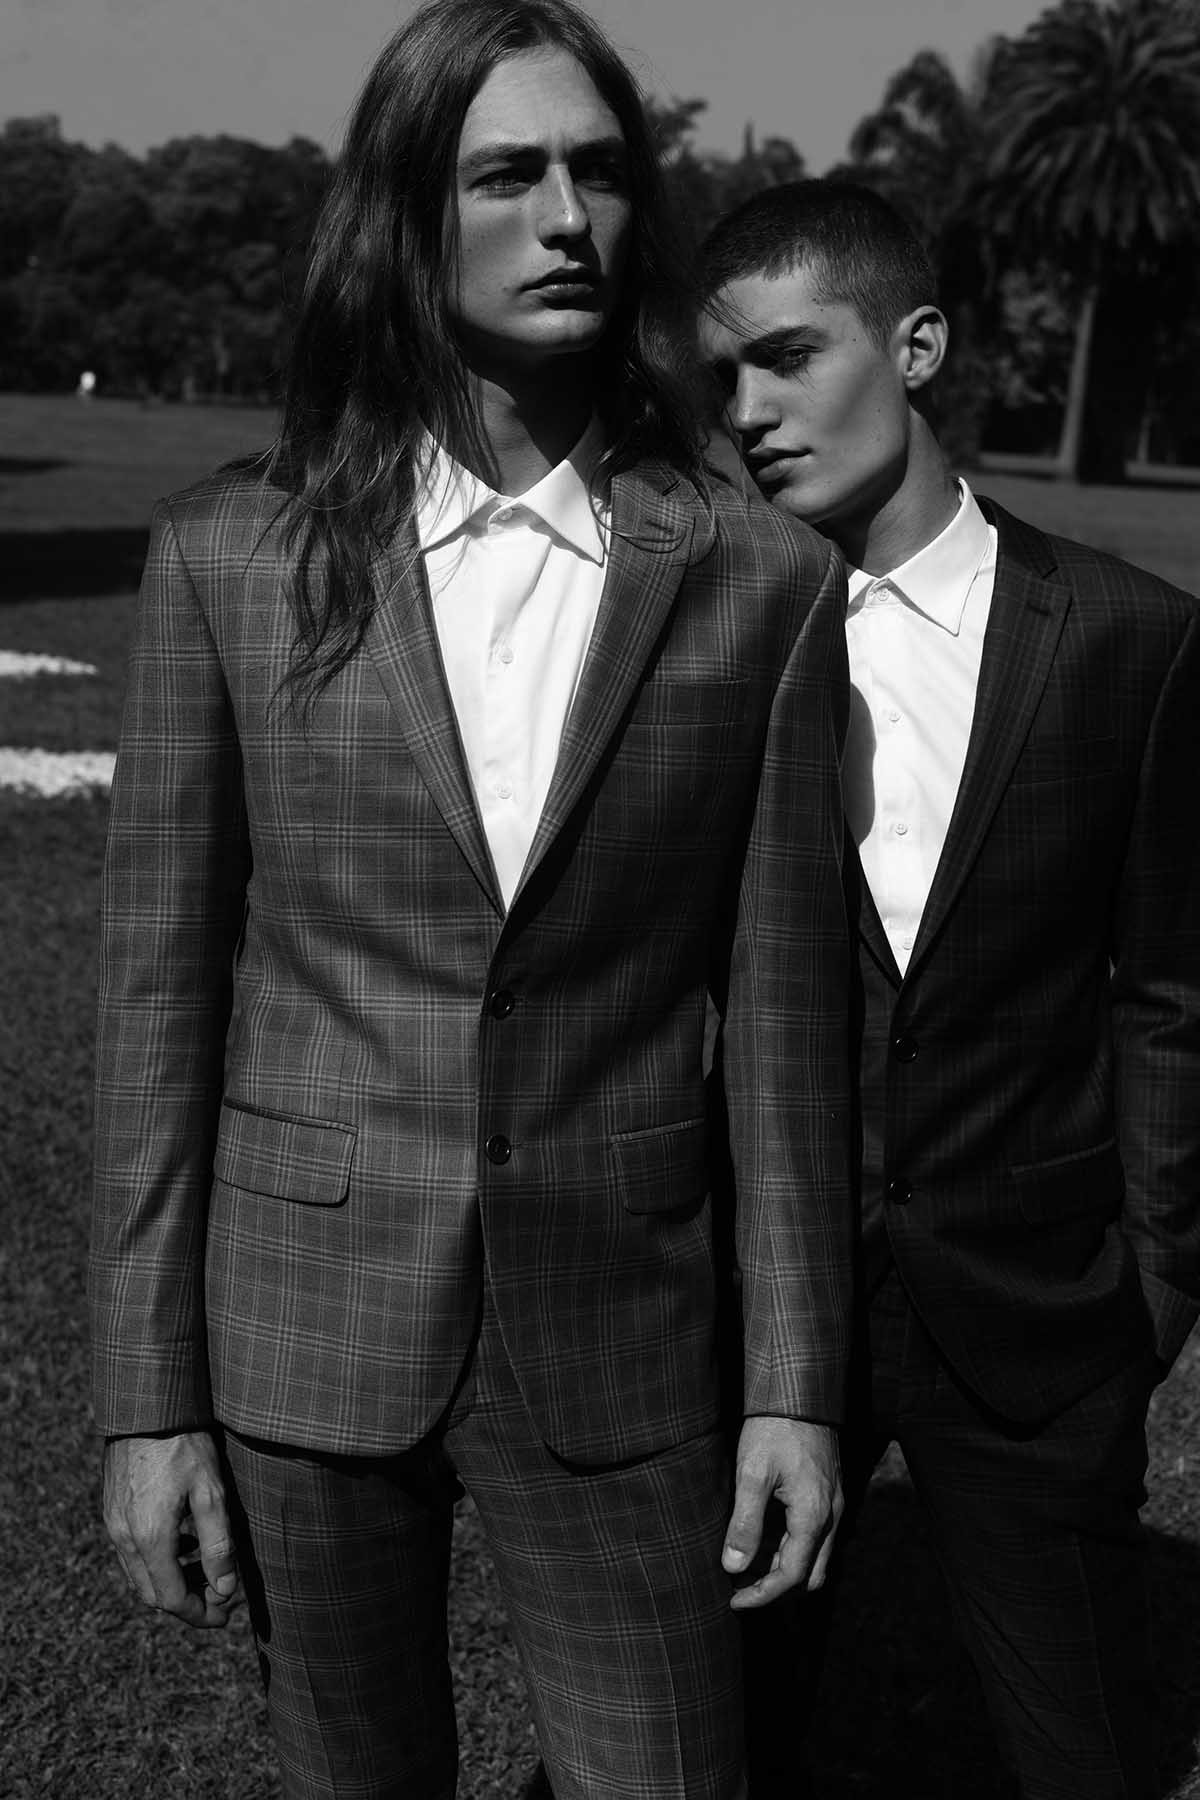 Matias Dombrowki and Paulo Voigt by Rodrigo Marconatto for Brazilian Male Model